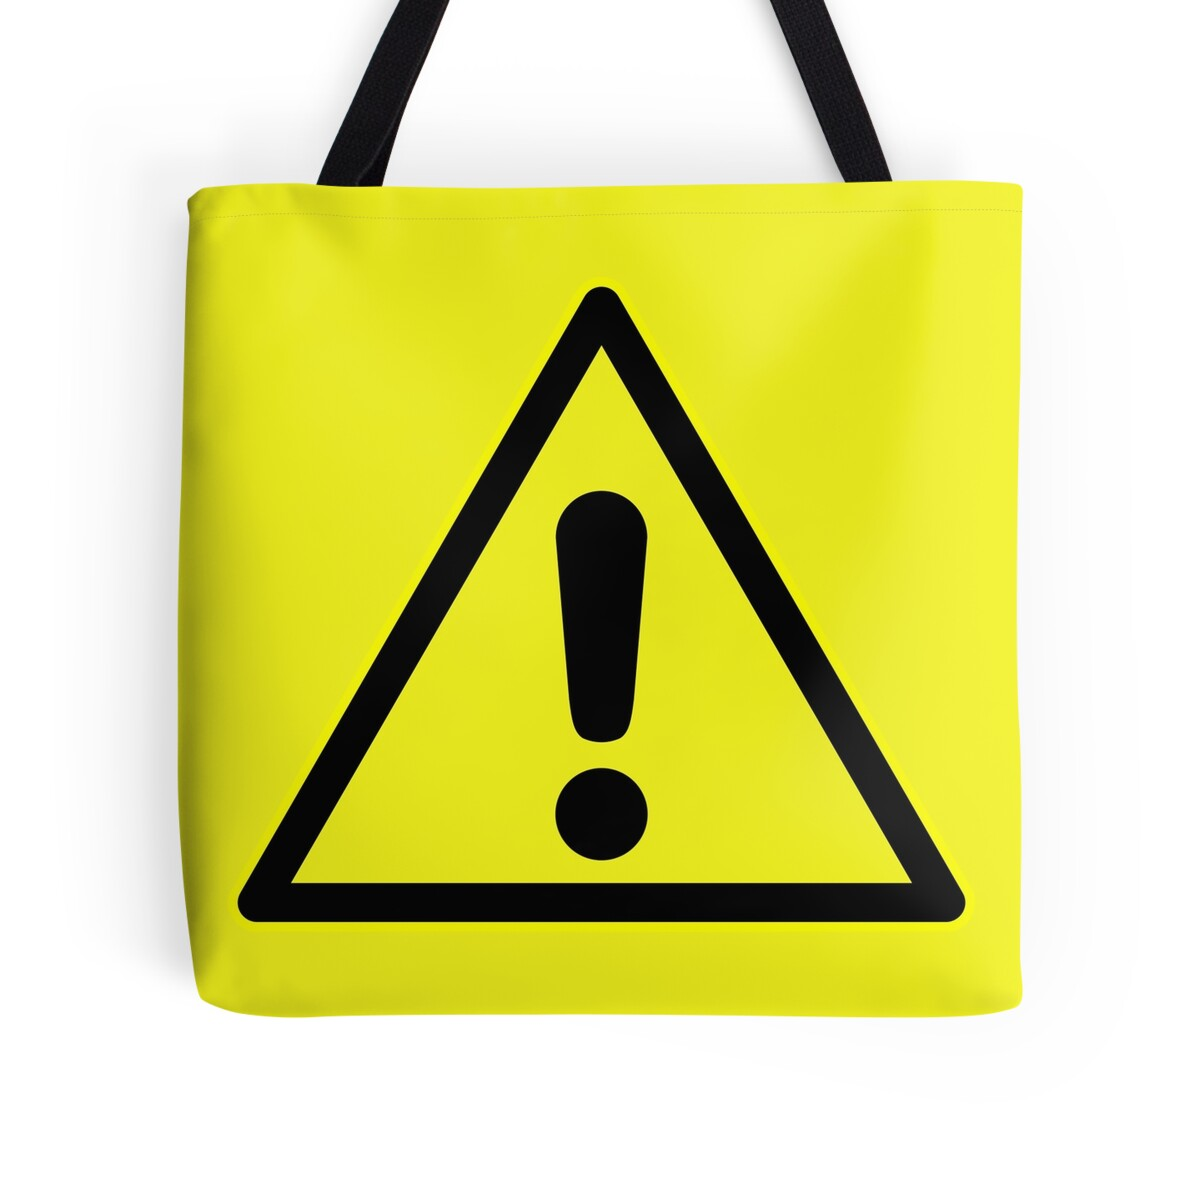 """Warning sign. Exclamation mark in yellow triangle."" Tote ...